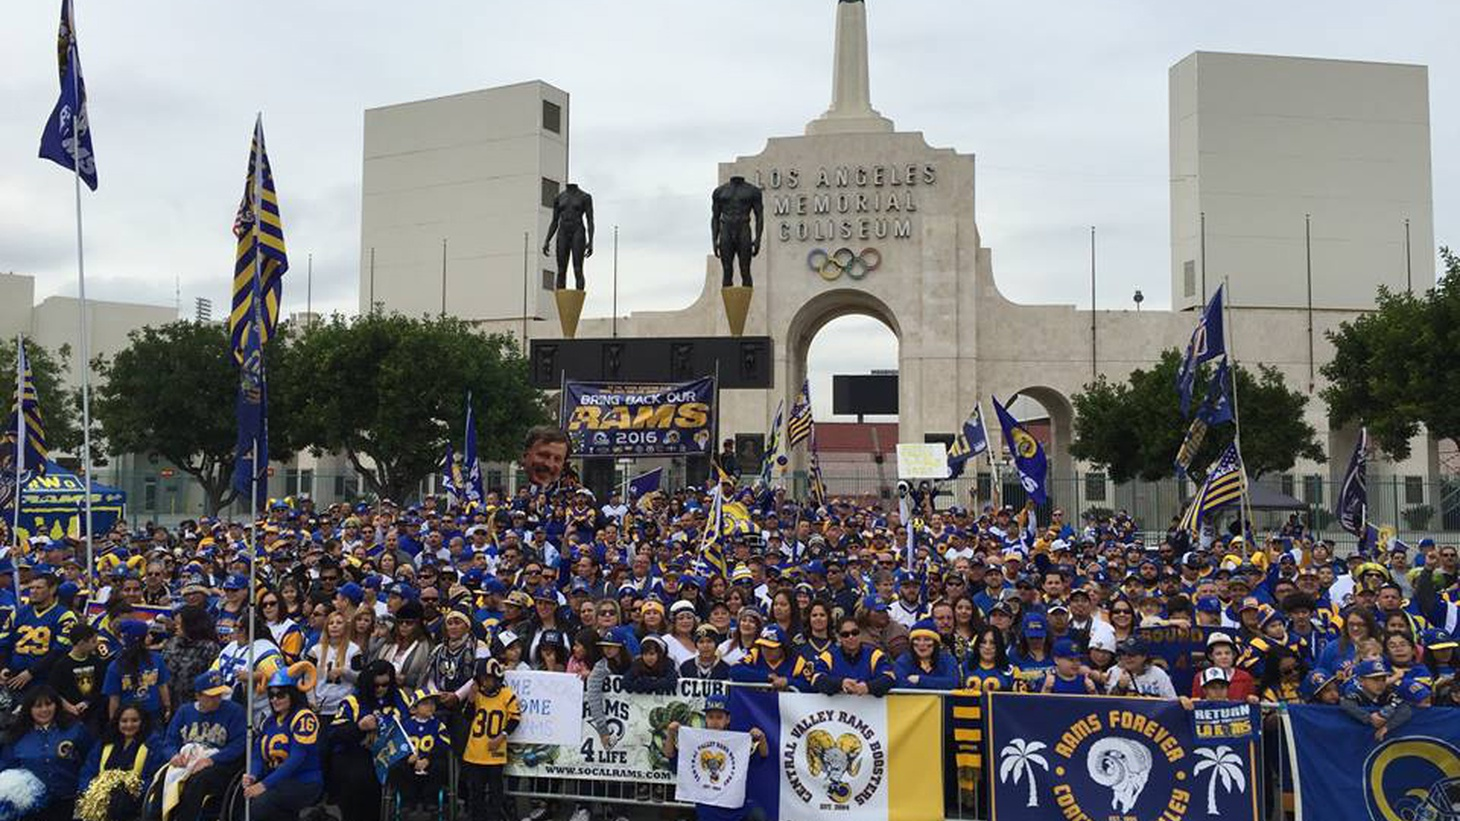 Since the Rams and the Raiders left 21 years ago, NFL team owners have threatened smaller market cities: if they don't come up with big money, their teams will move to LA. Yesterday, the  owners voted to move the Rams  from St. Louis, Missouri to Inglewood. Is it for real?